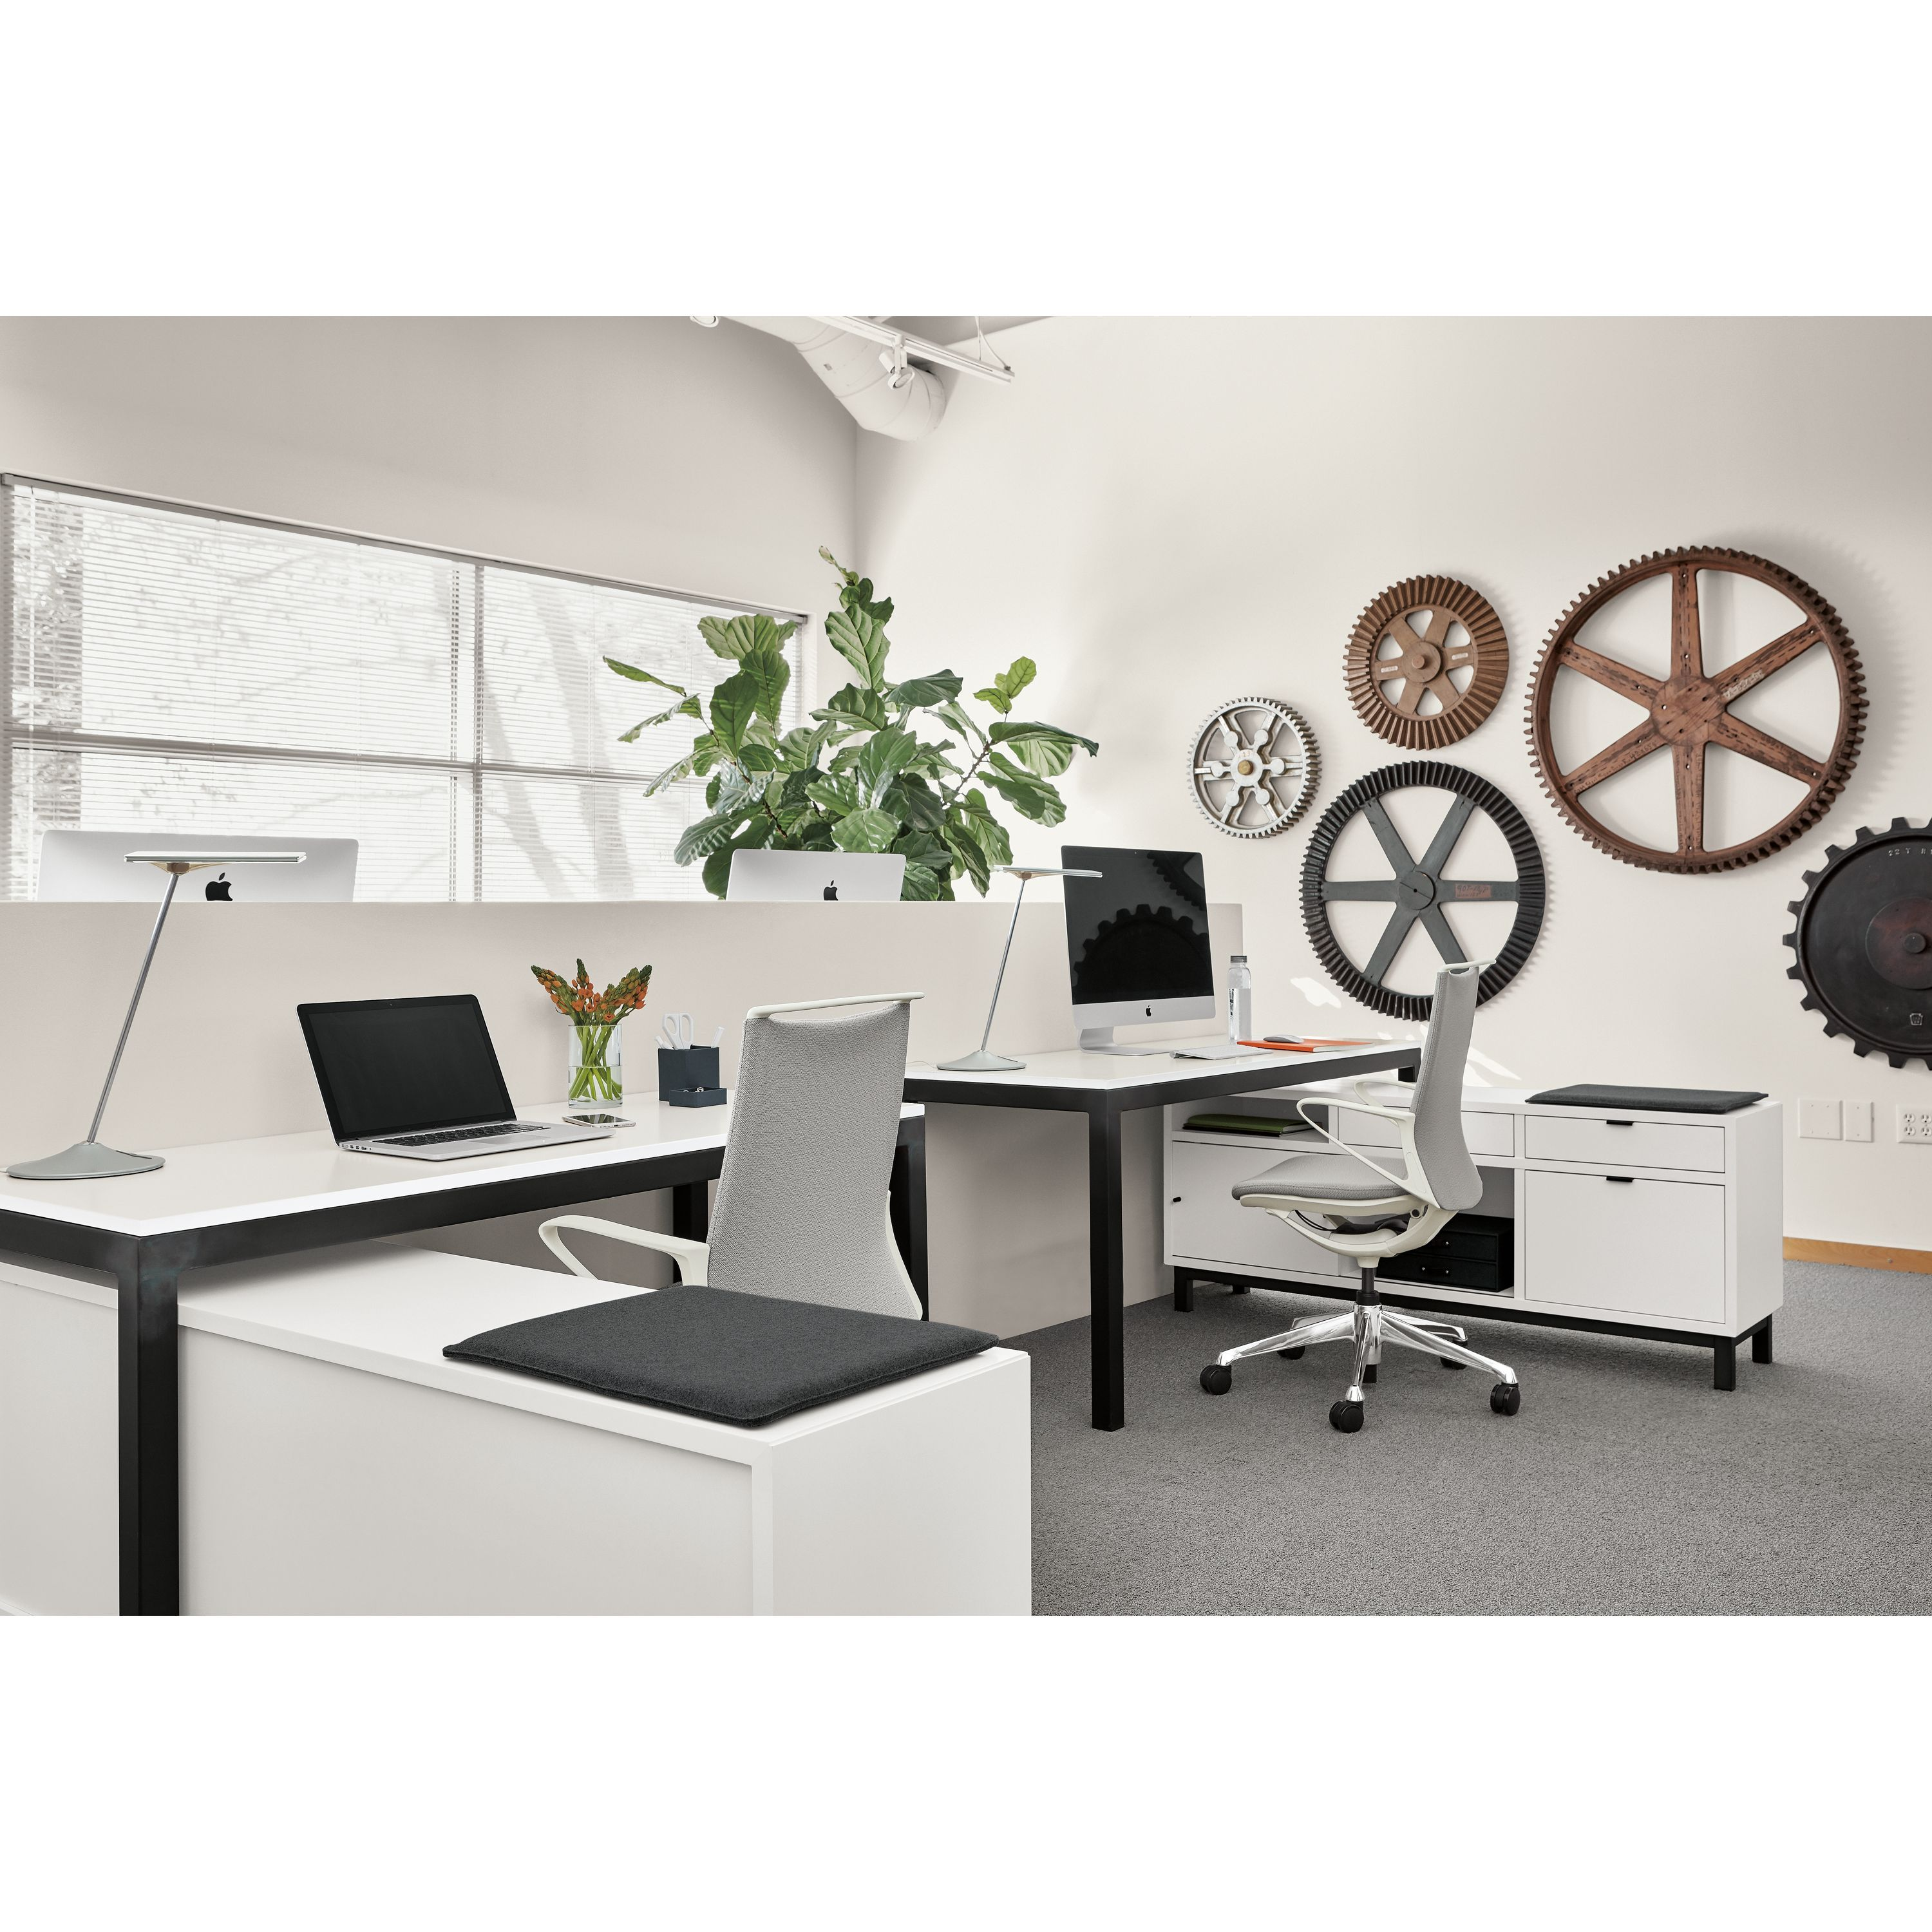 Room board copenhagen file storage benches with cushion